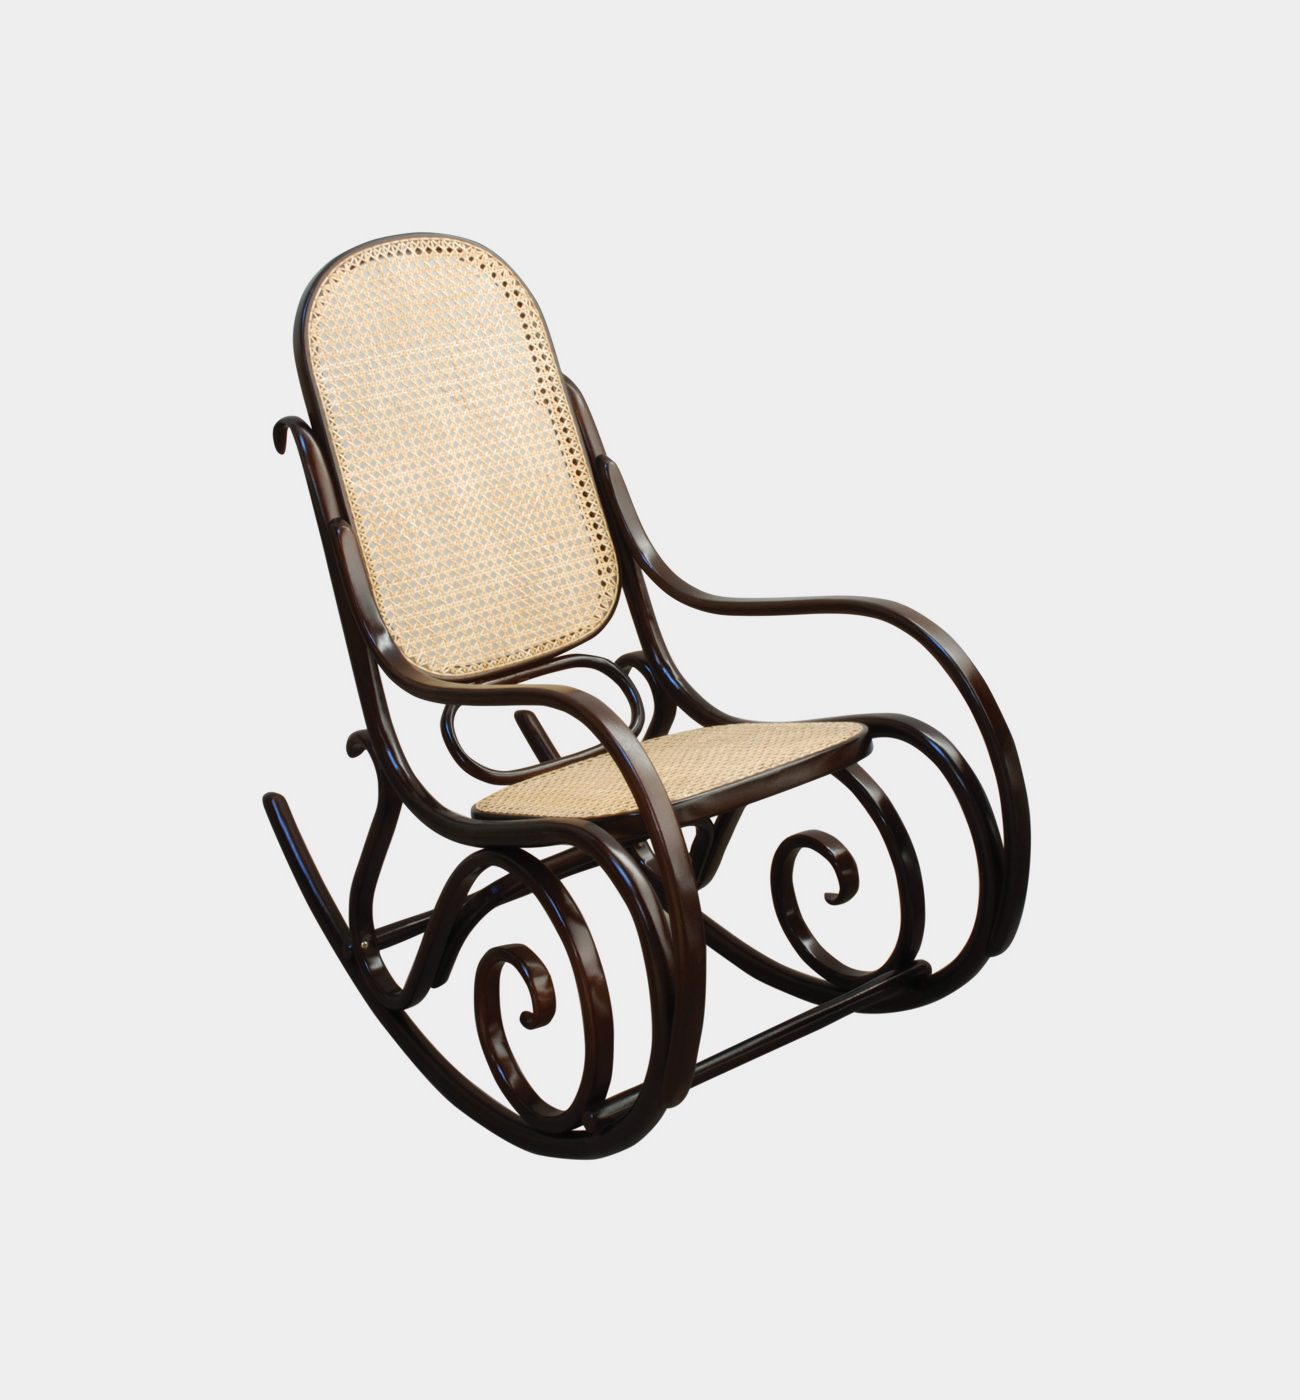 Marvelous No 21 Rocking Chair Thonet Creativecarmelina Interior Chair Design Creativecarmelinacom